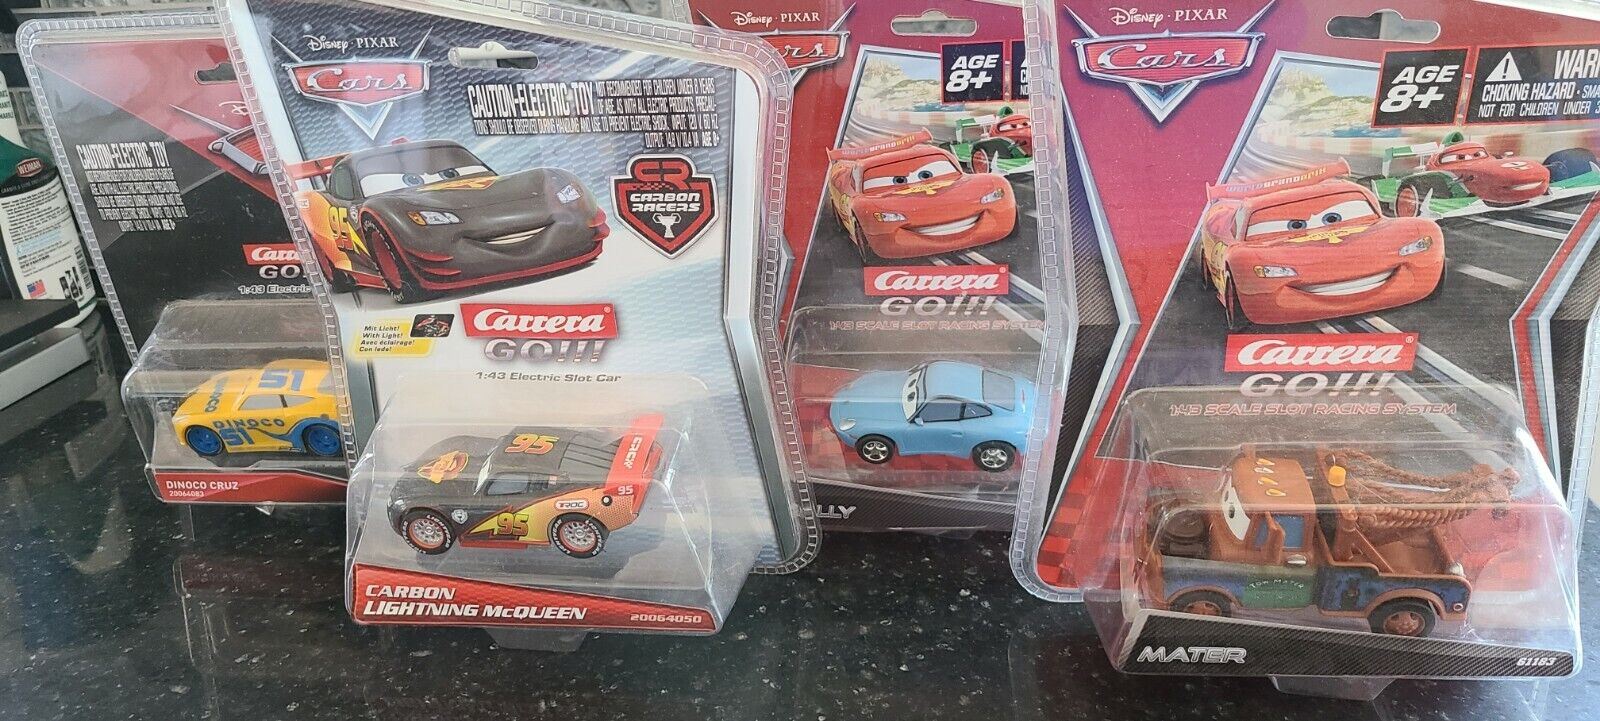 Carrera Go Disney Cars 3 Cup Duel For Sale Online Ebay